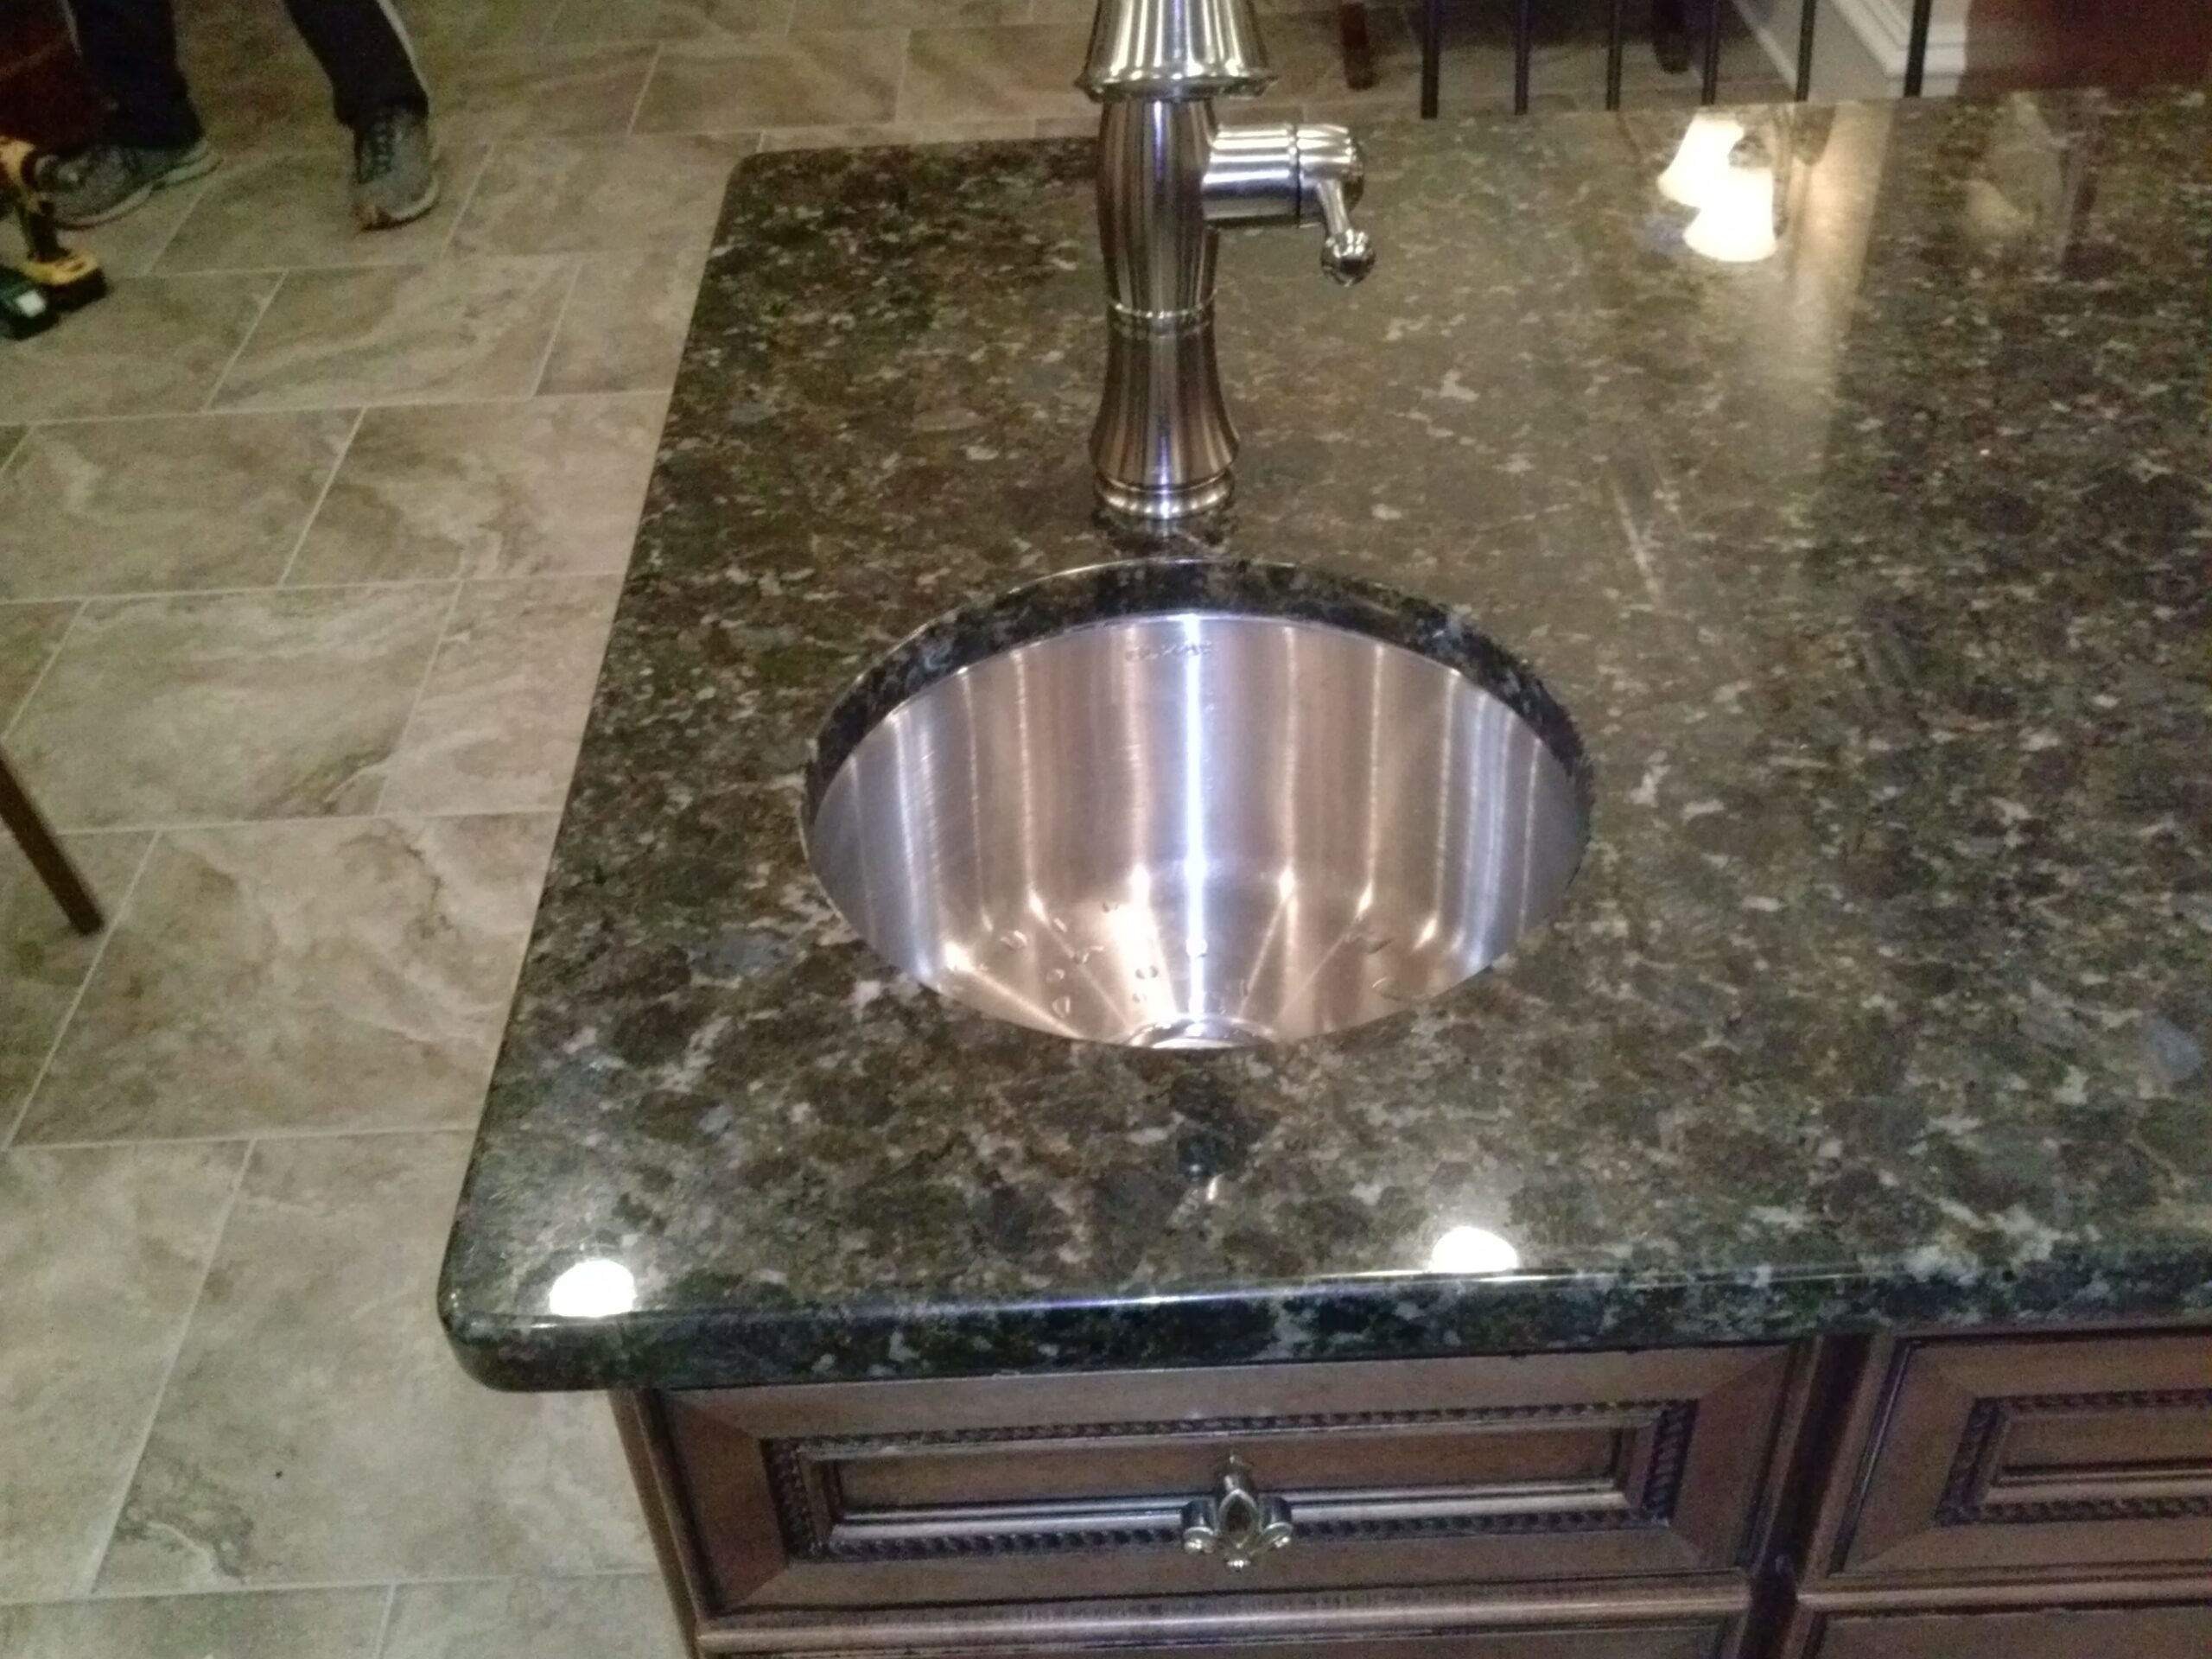 Sink cutout in granite by Upgrade Cabinets